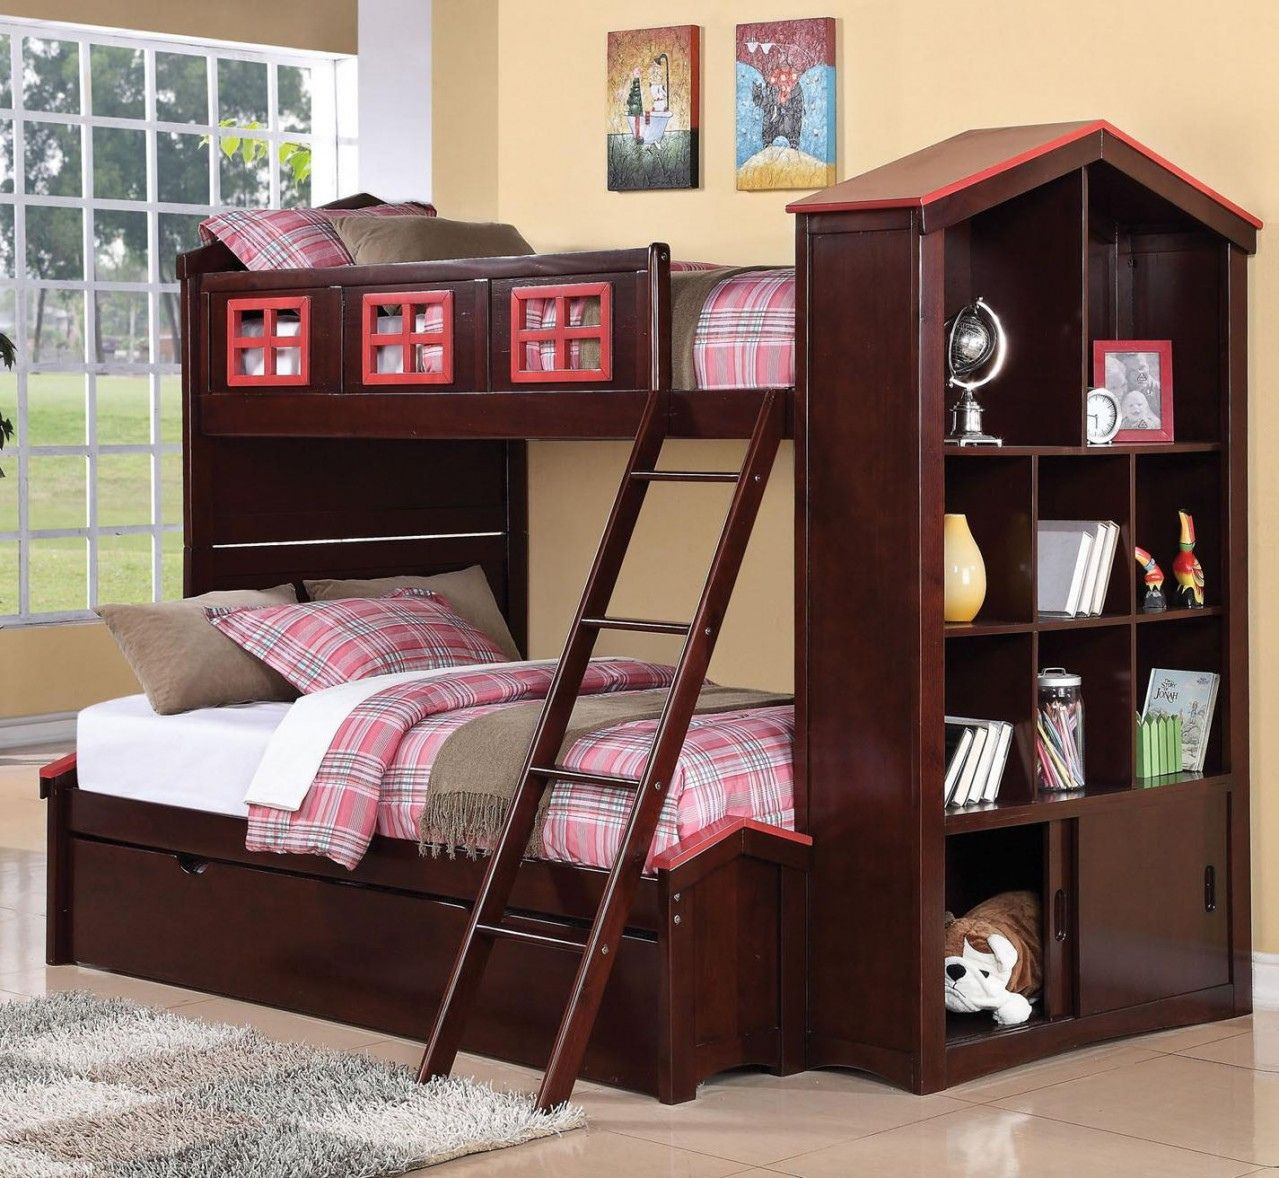 Queen loft bed ideas  Twin Twin Bunk Bed with Trundle  Interior House Paint Ideas Check